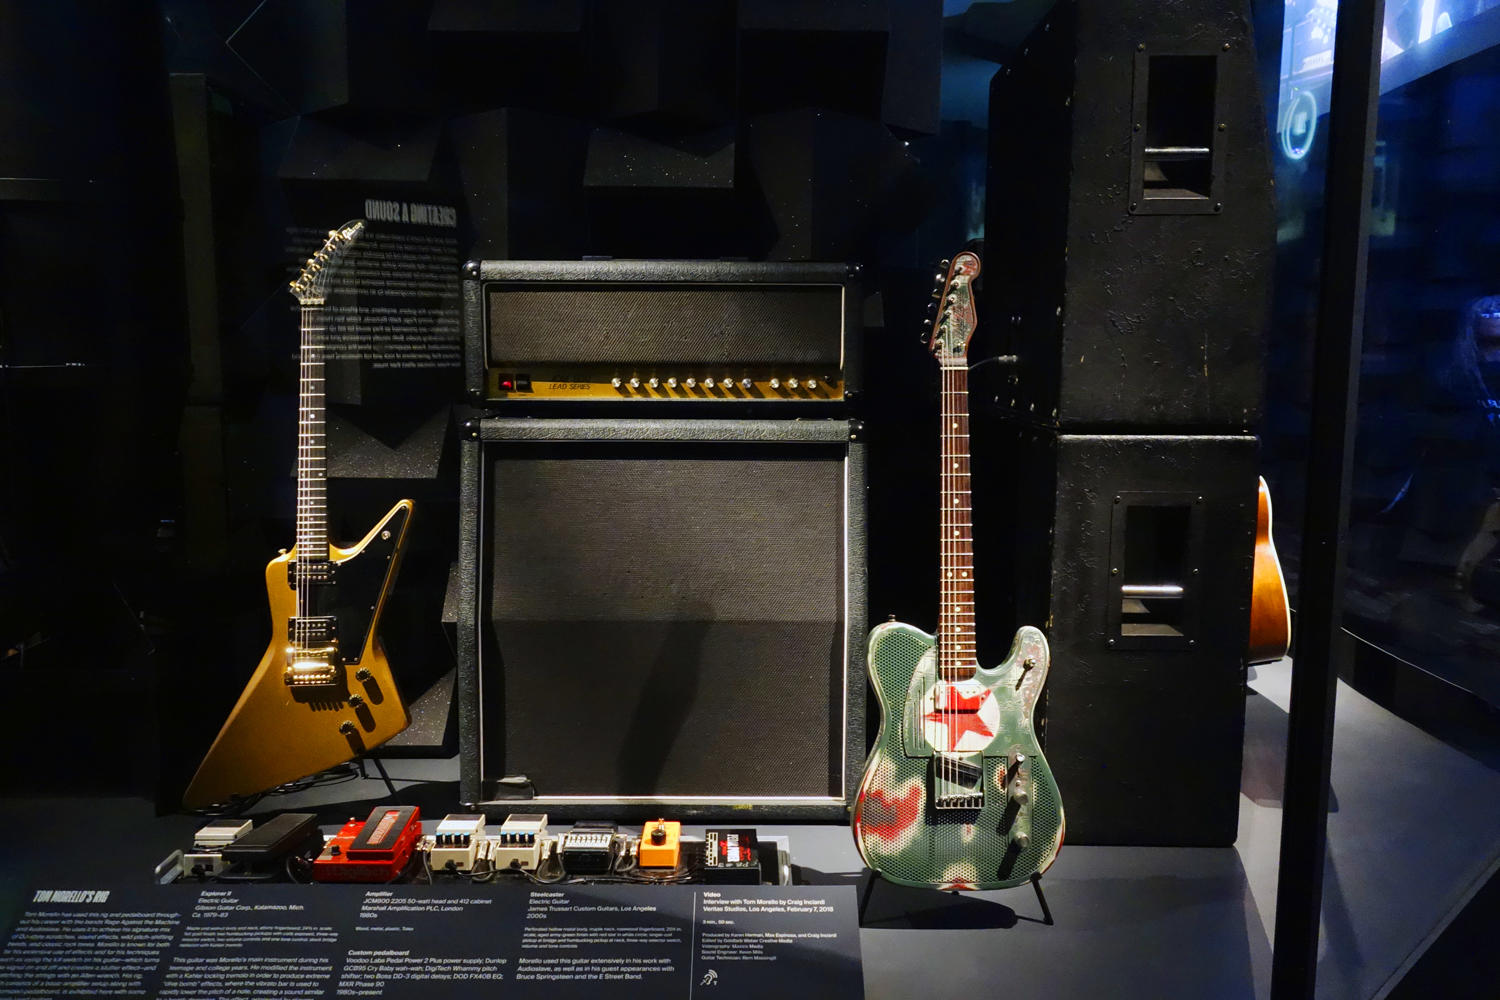 Tom Morello's rig from the 1980s to 2000s